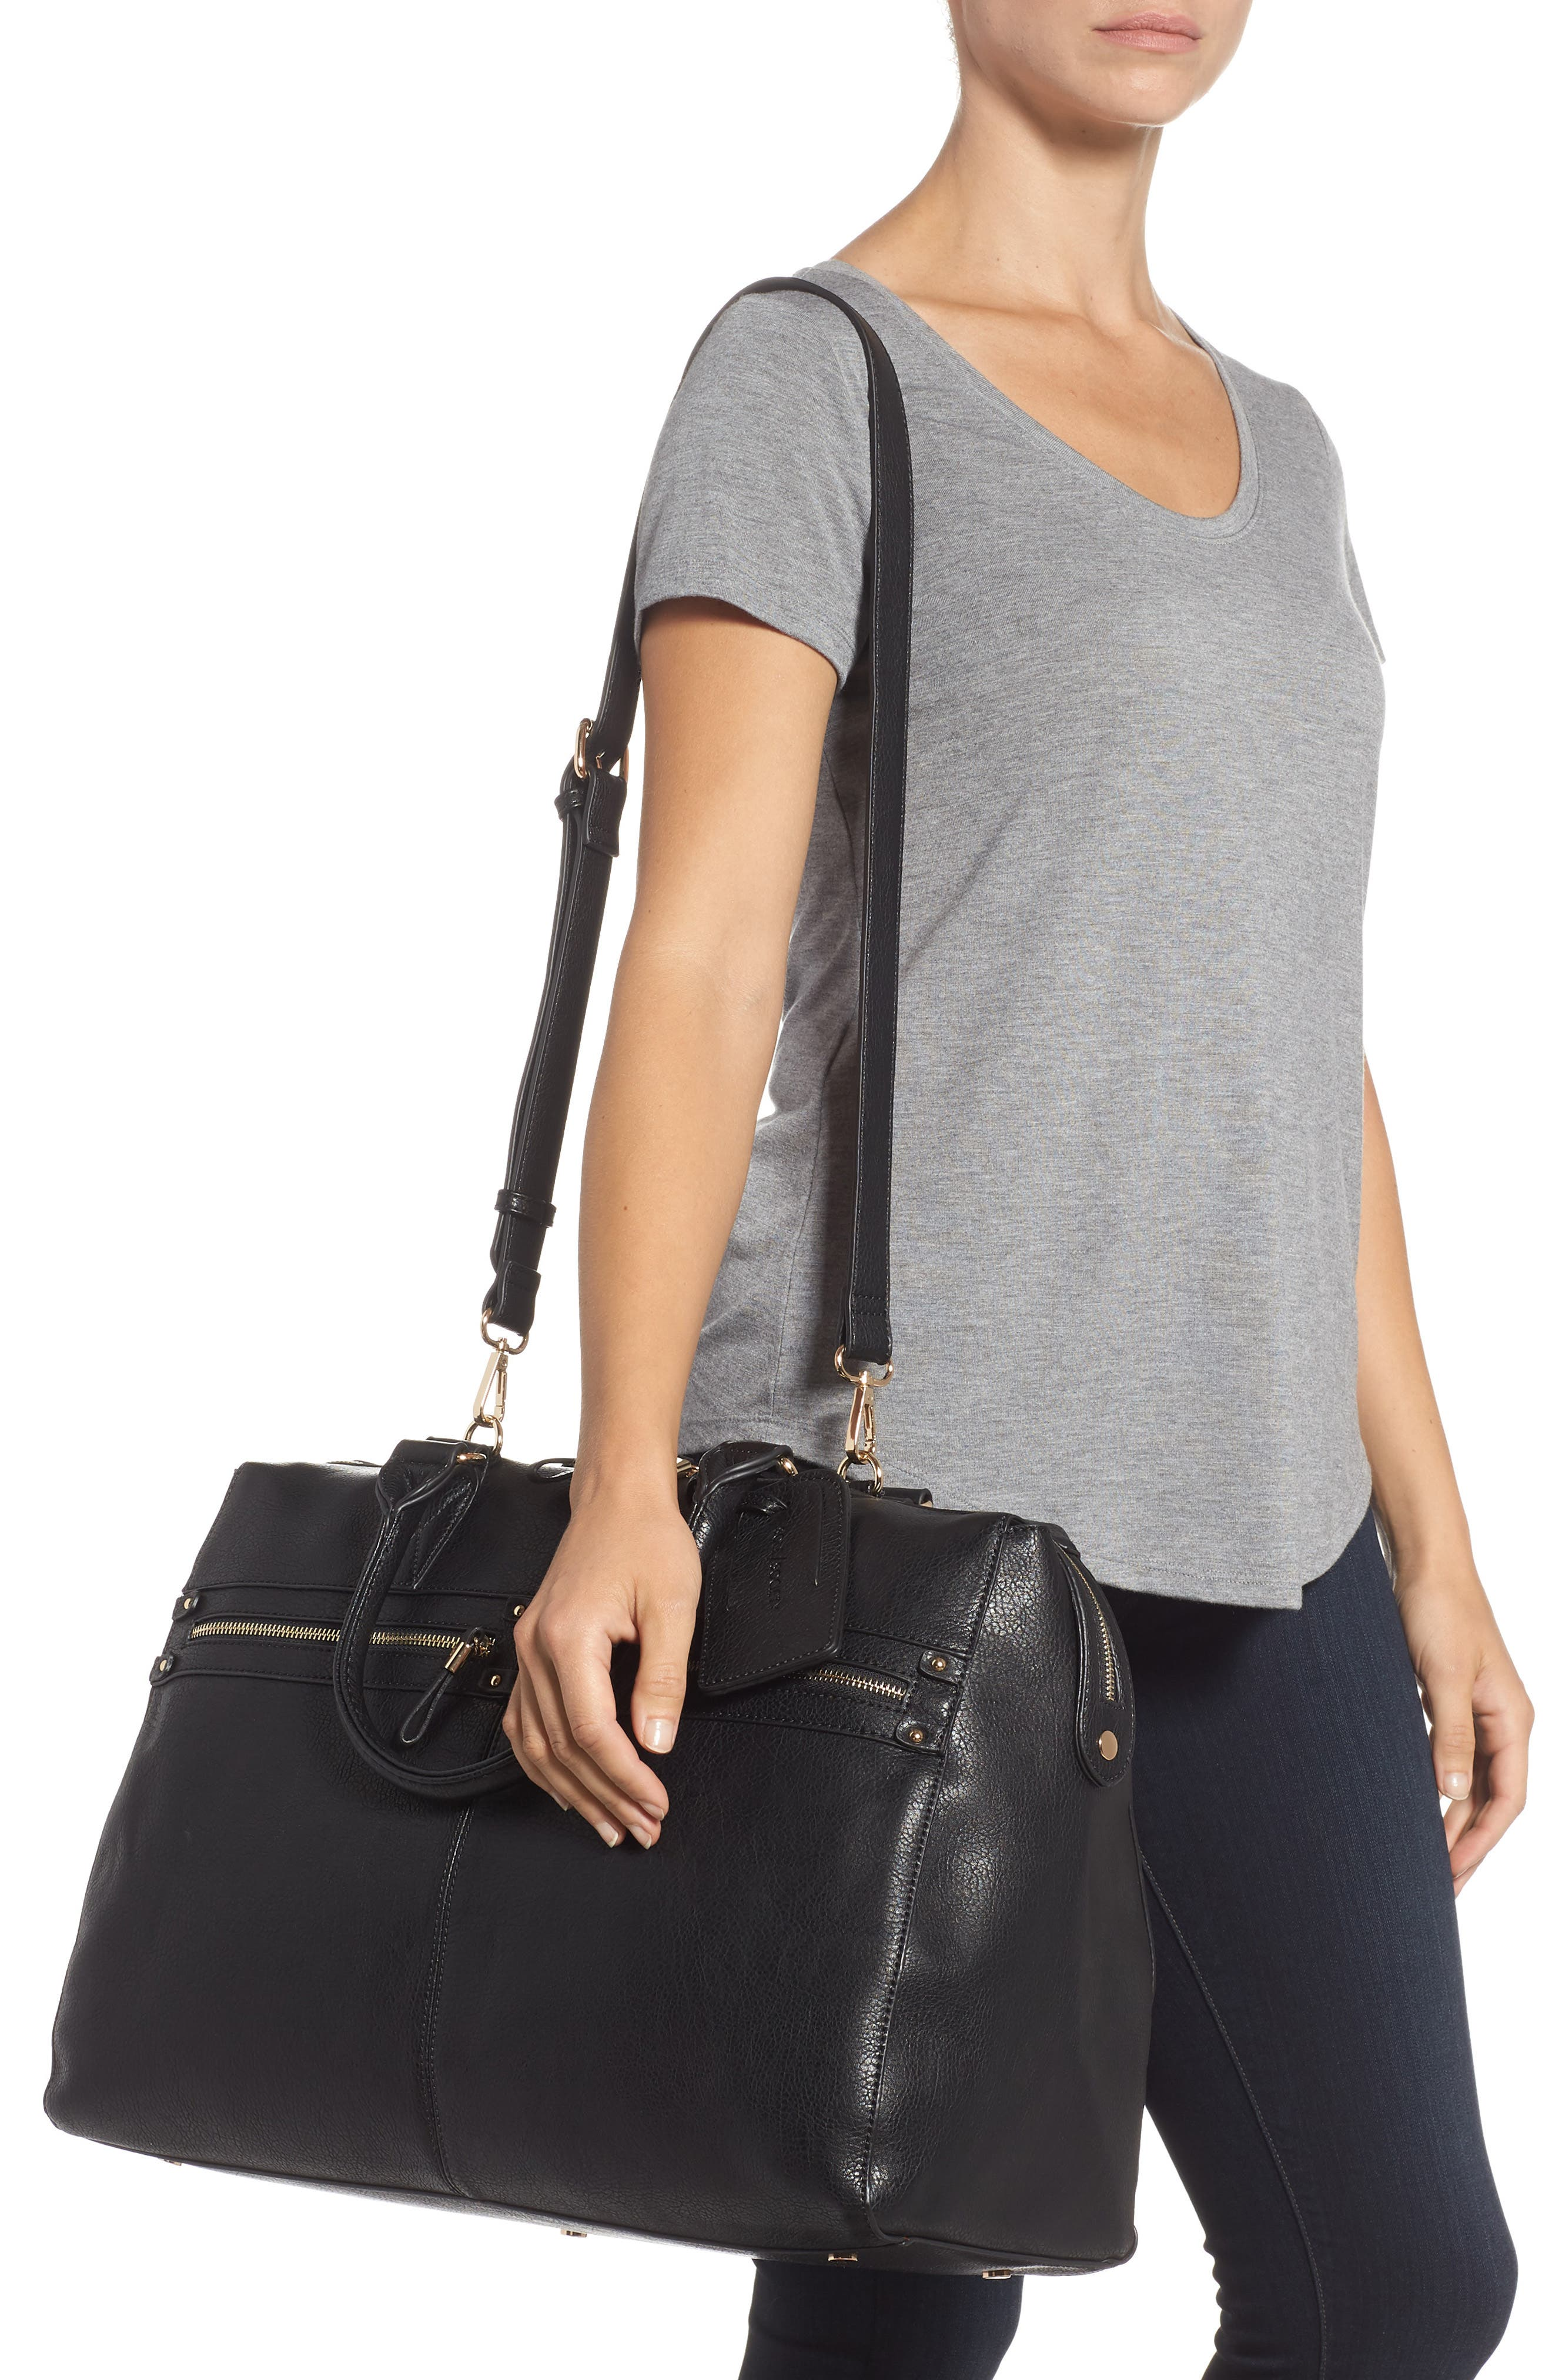 Zypa Faux Leather Weekend Bag,                             Alternate thumbnail 2, color,                             BLACK